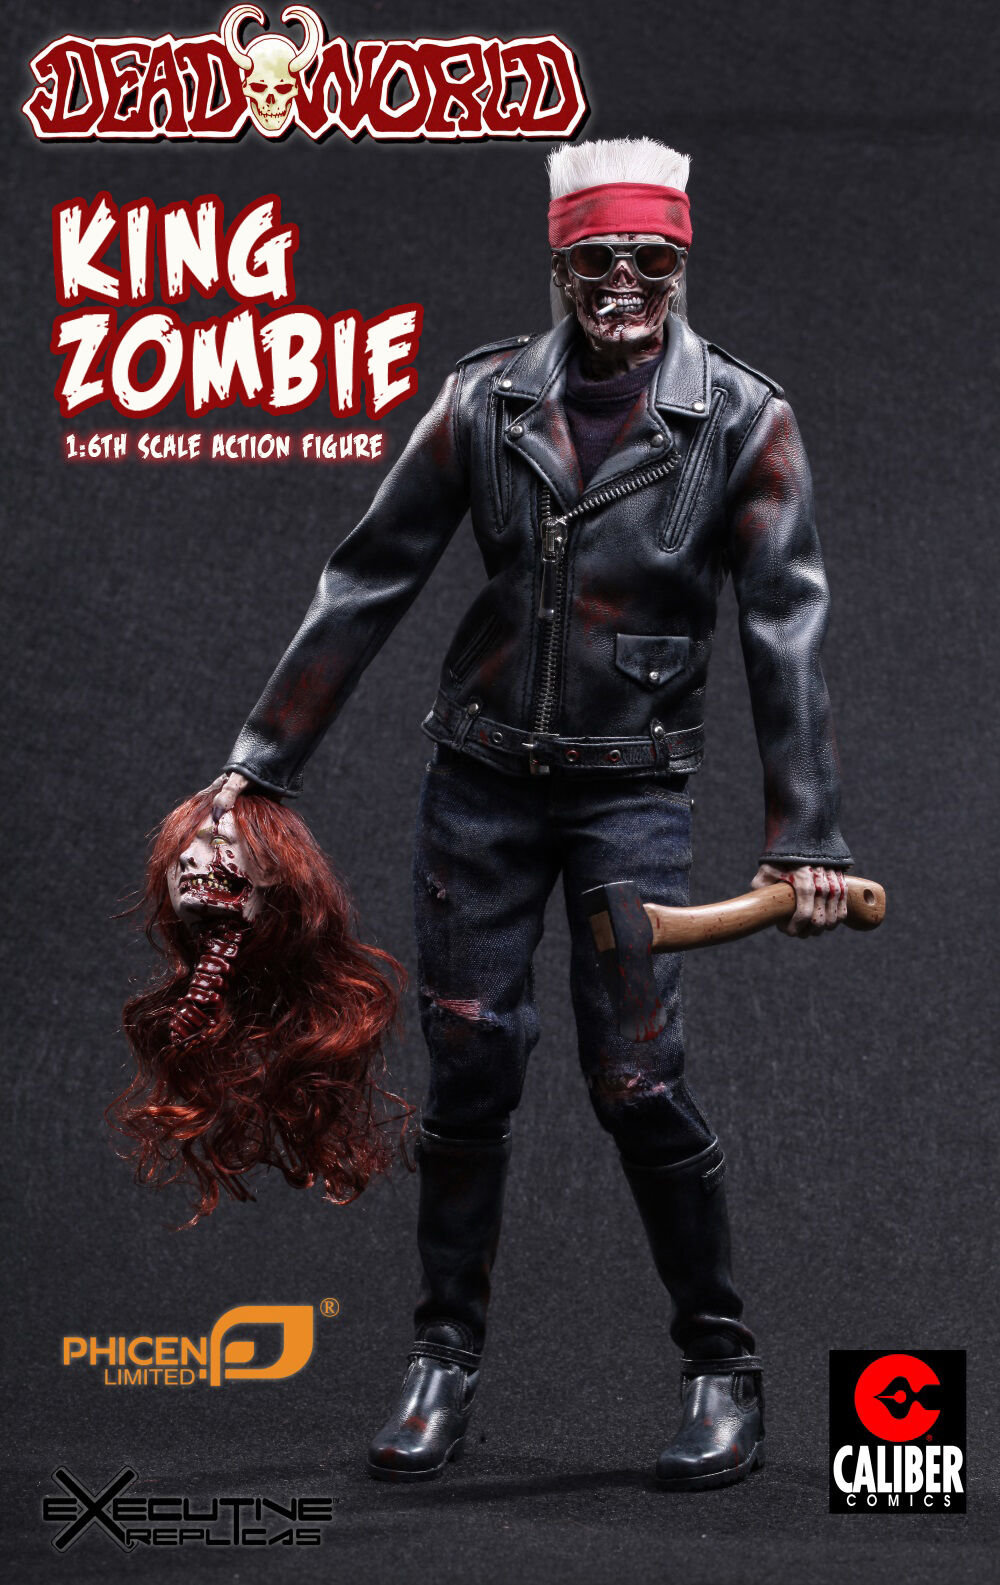 Phicen 1 6 Dead World King Zombie Action Figure Caliber Entertainment PL2015-92